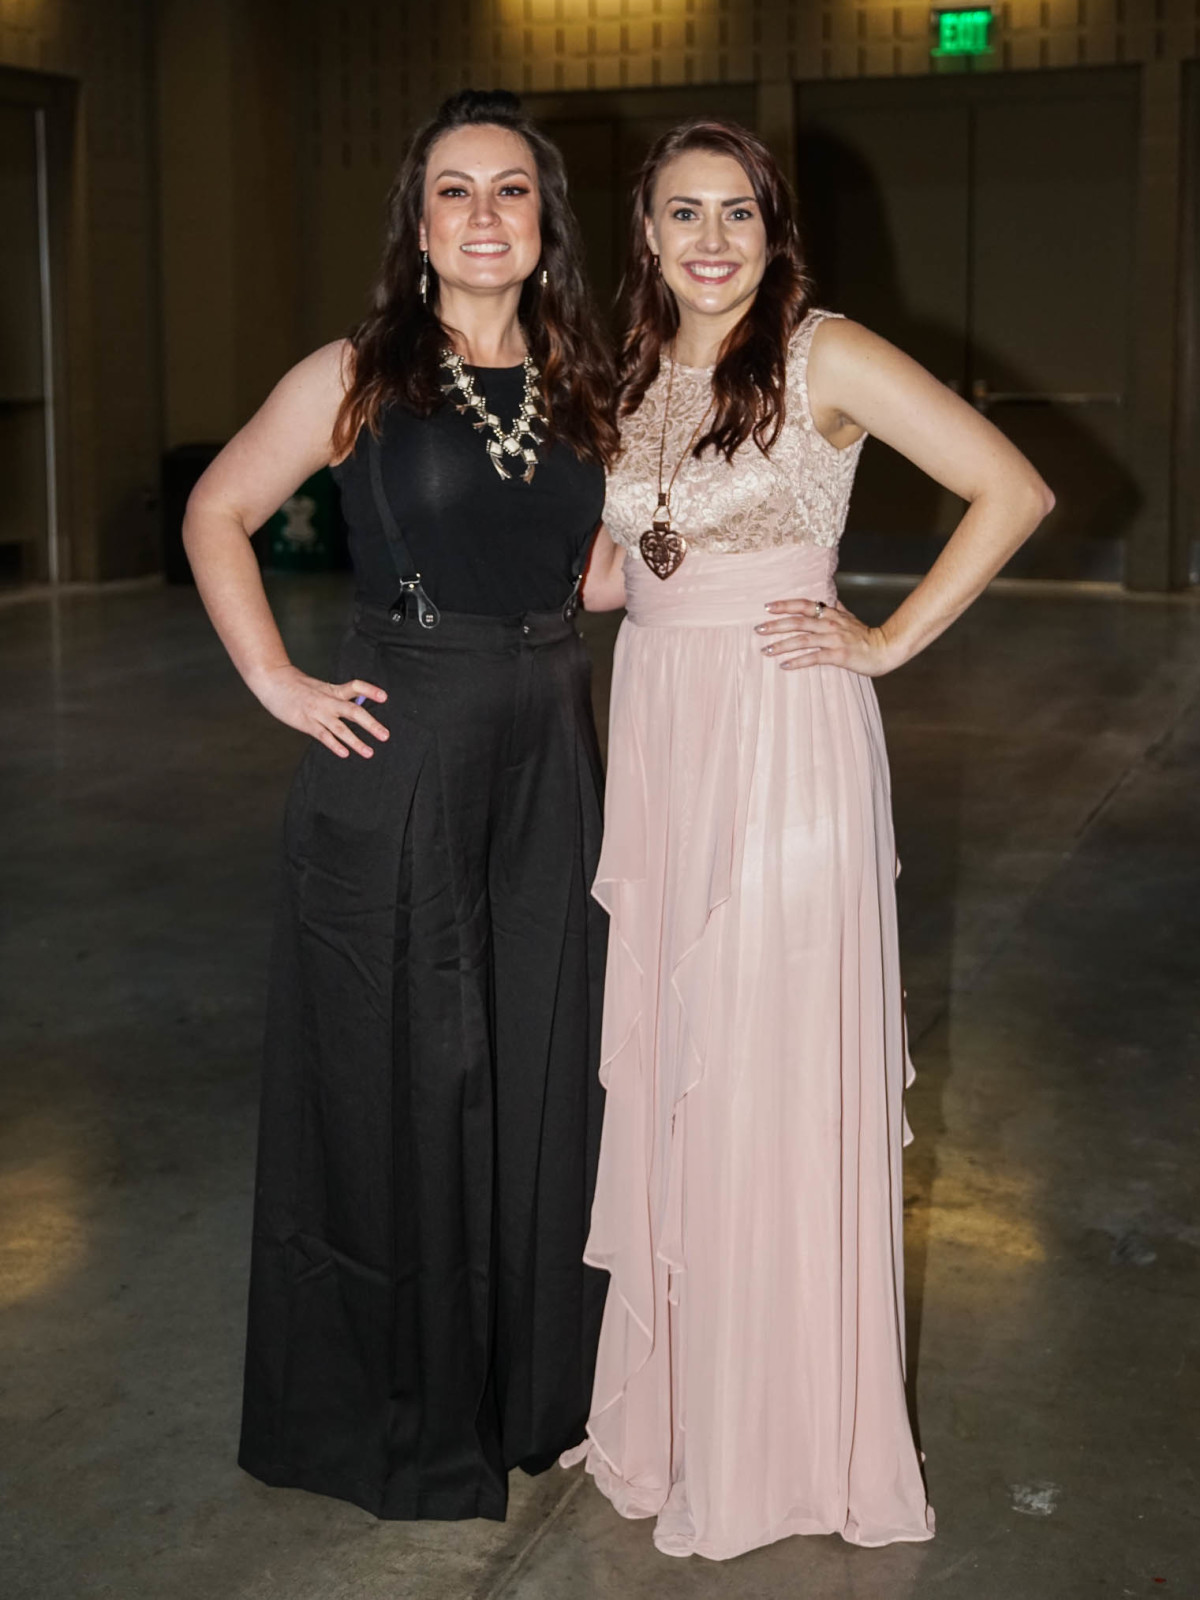 Austin Rodeo Gala 2018 Fashion Alexis Hostetter Kailin Miner